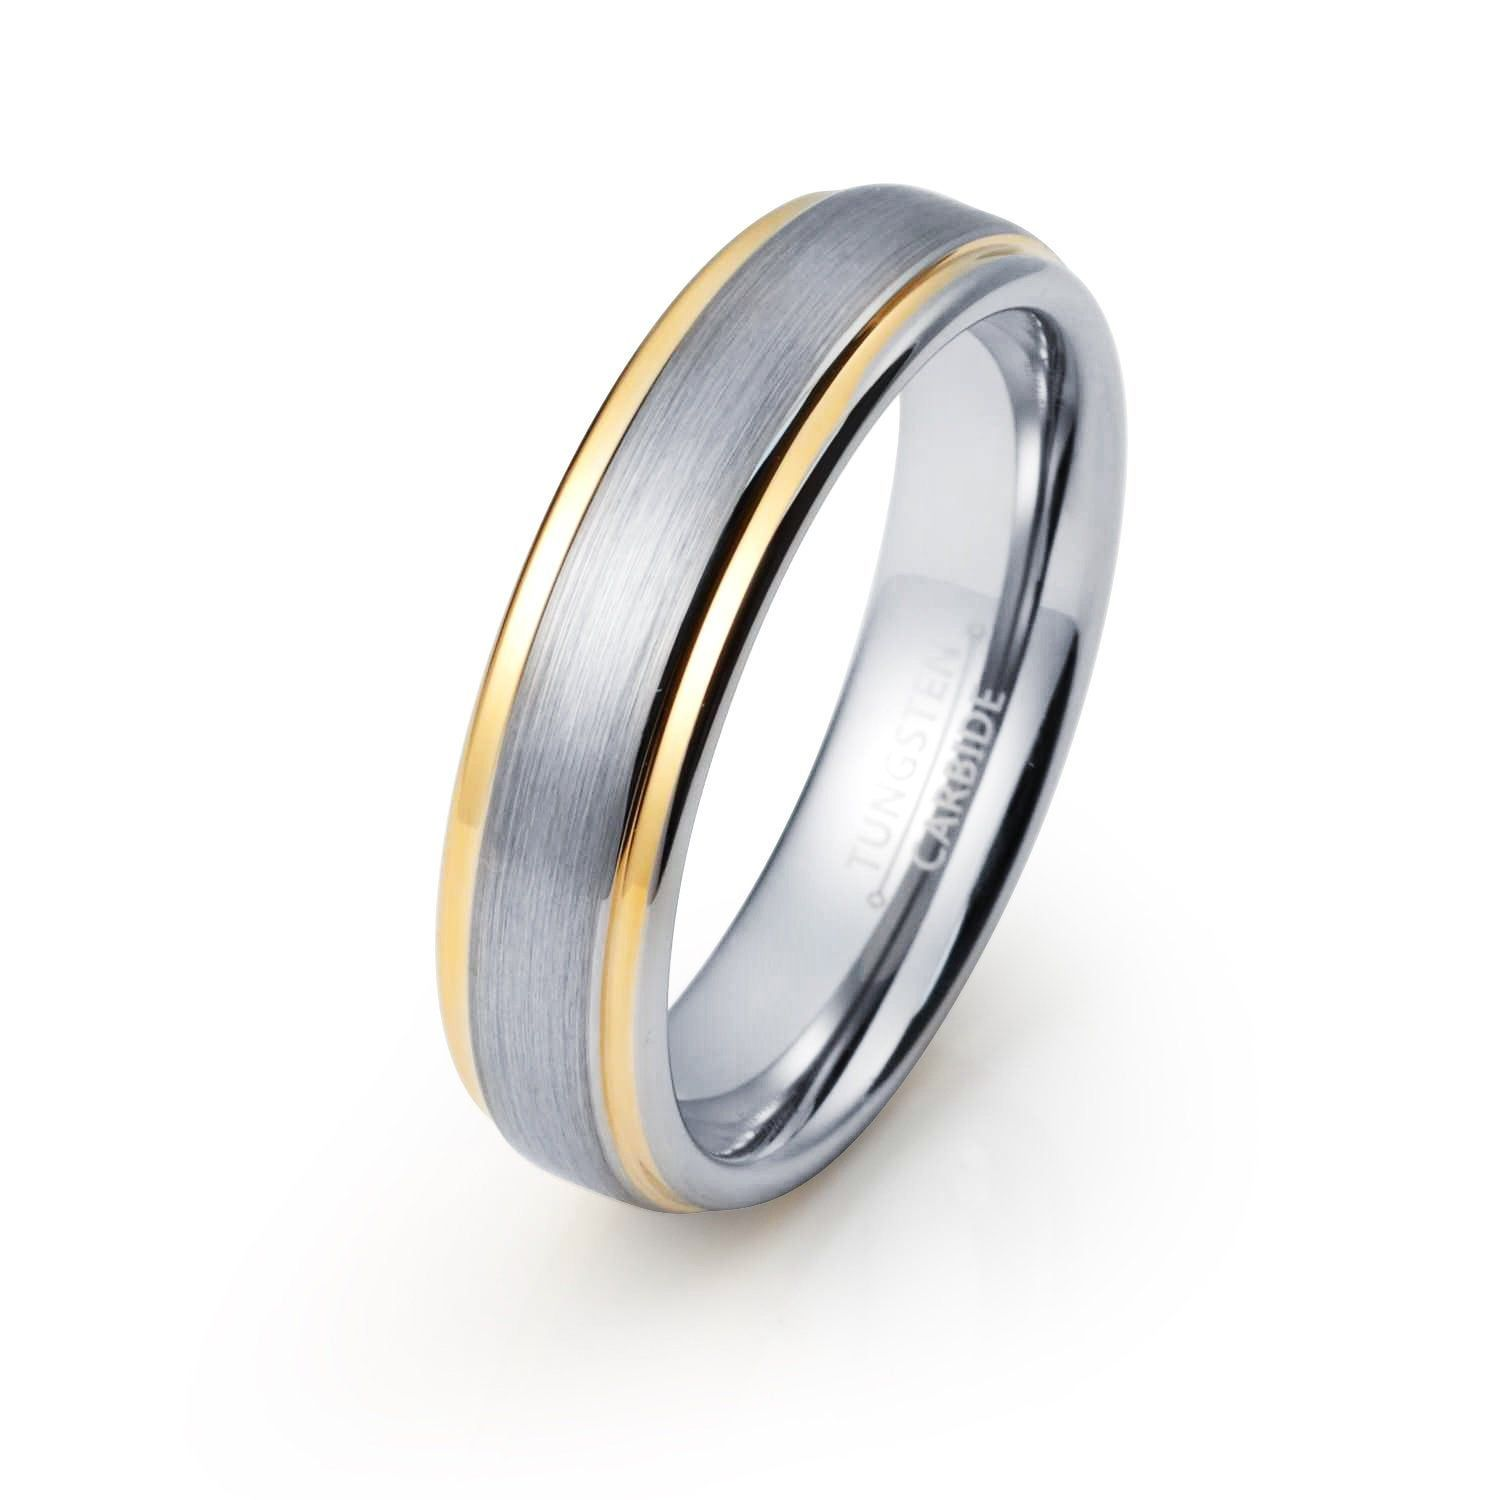 Yellow Gold Wedding Band Brushed Silver Tungsten Ring Mens Etsy In 2020 Tungsten Wedding Bands Yellow Gold Wedding Band Mens Wedding Bands Tungsten